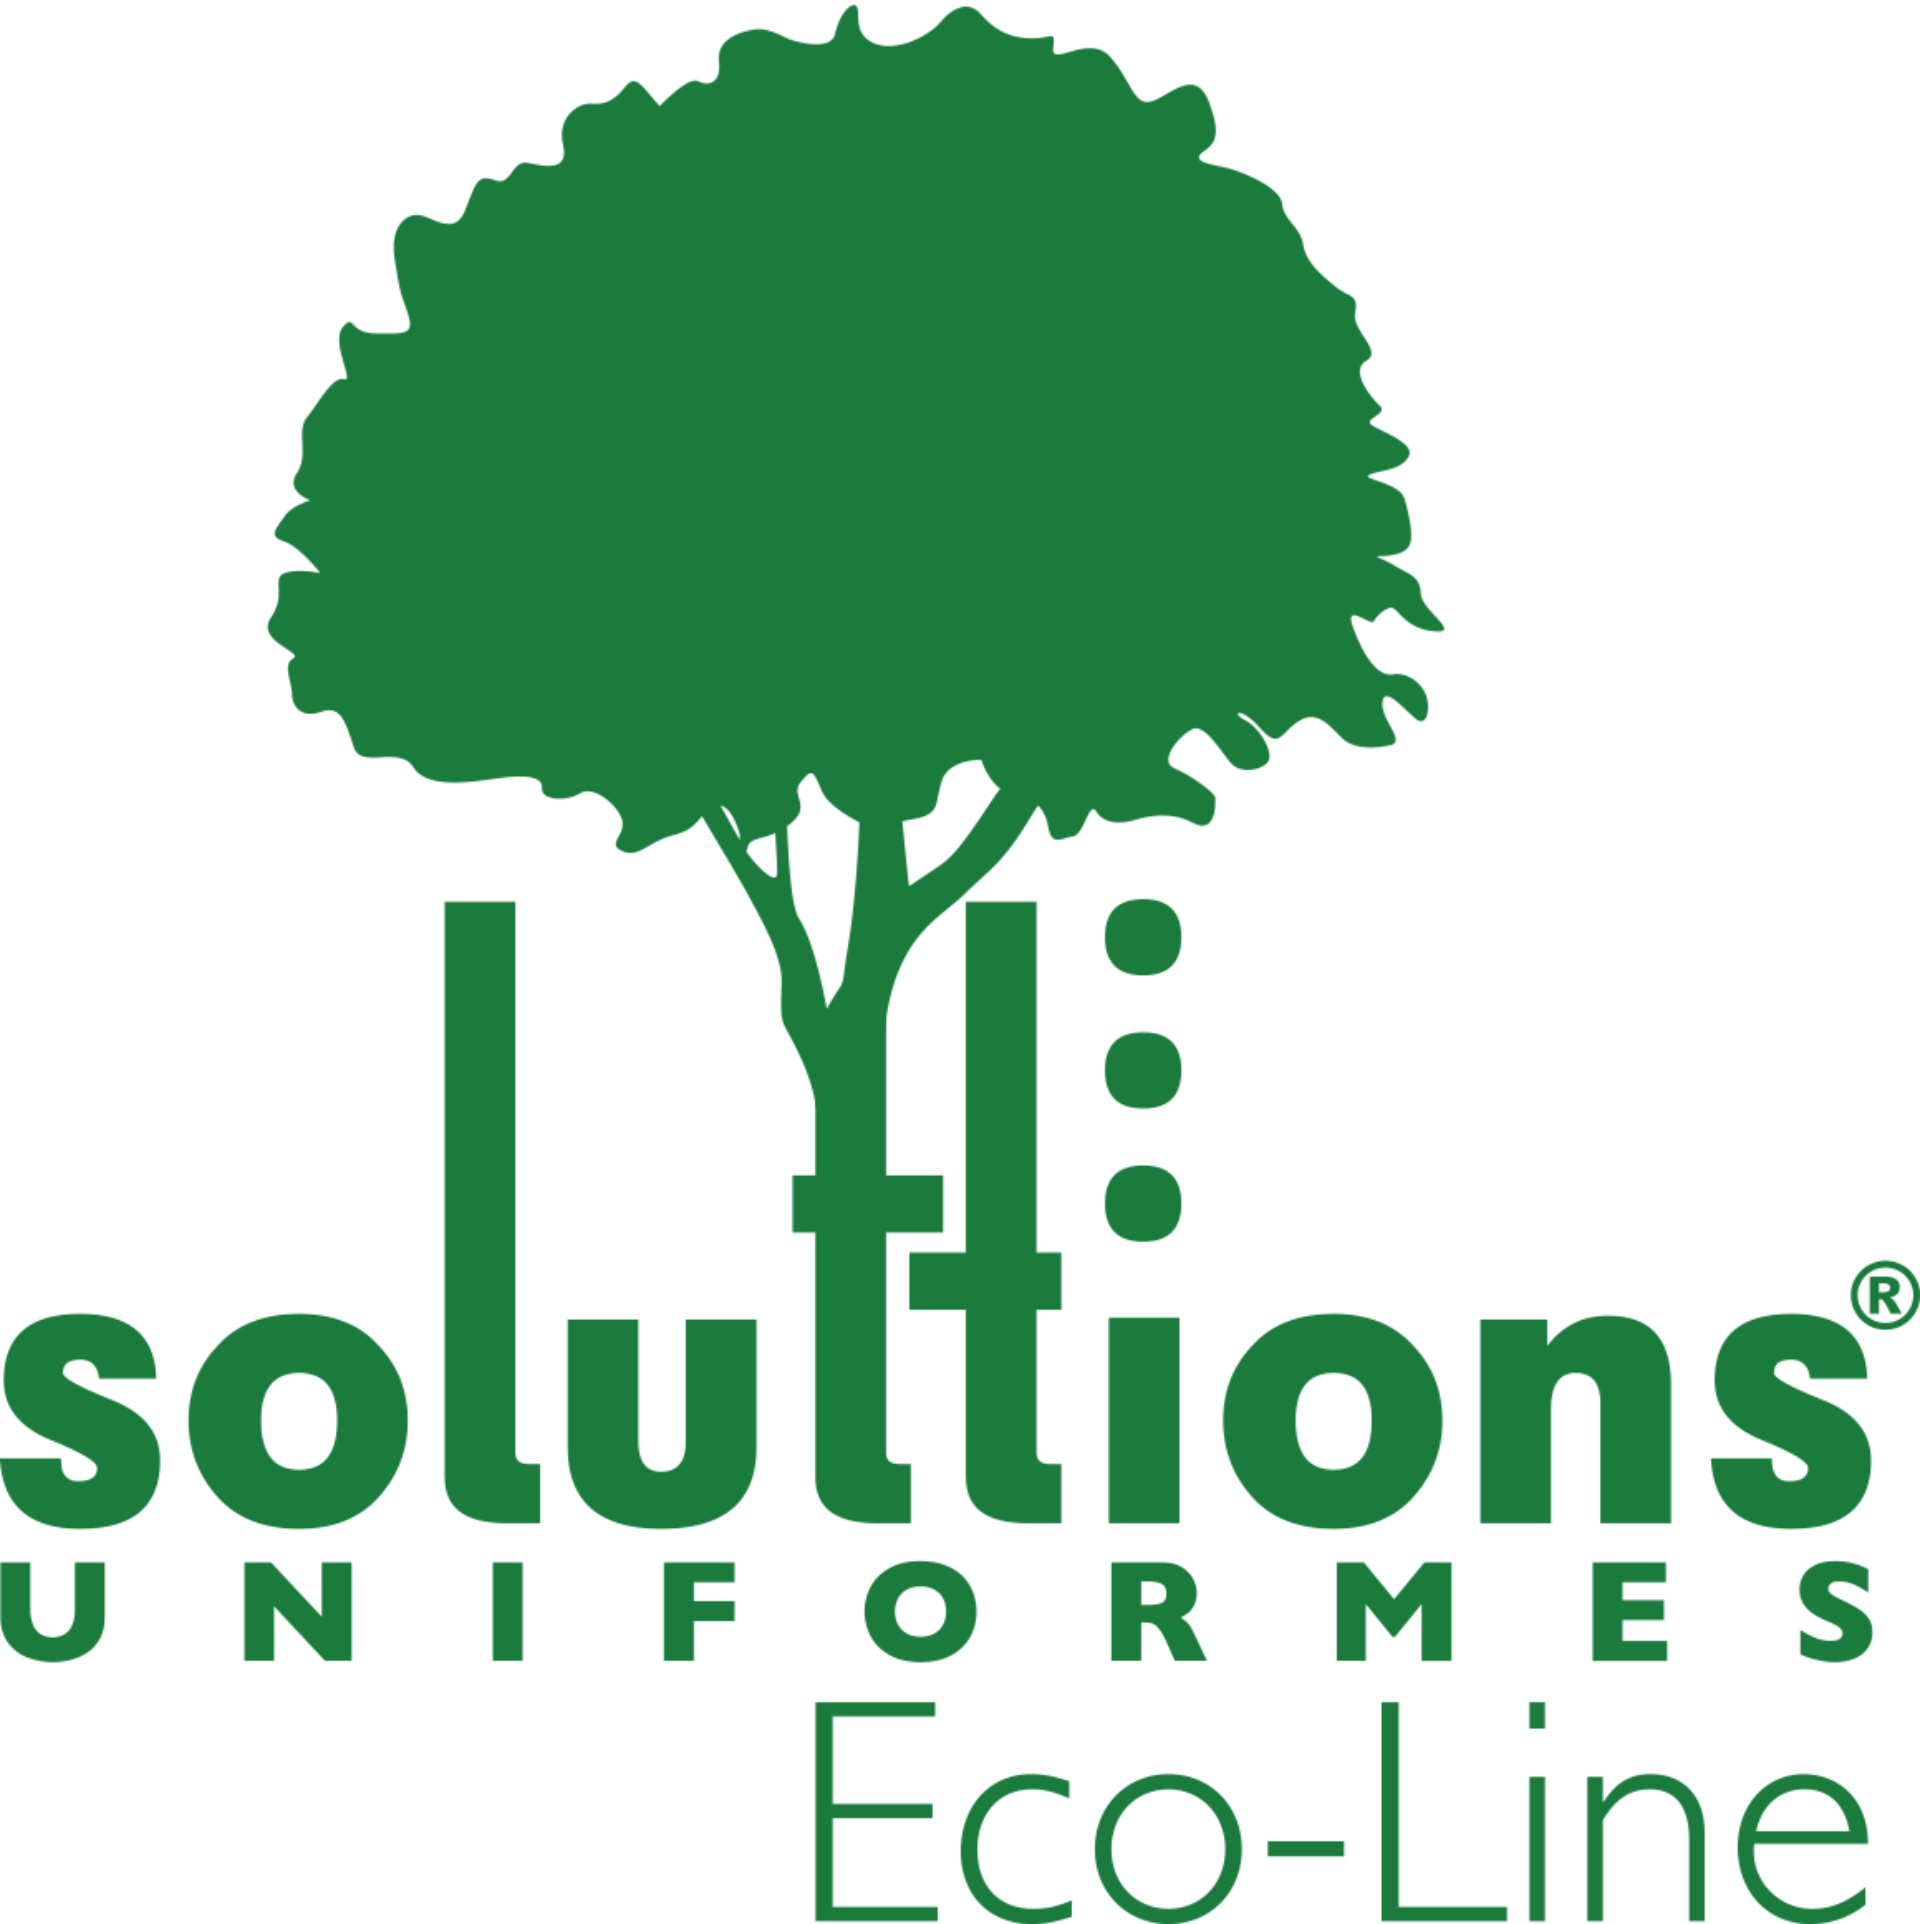 Sostenibilidad-Logo-Soluttions-Eco-Line-OK.png